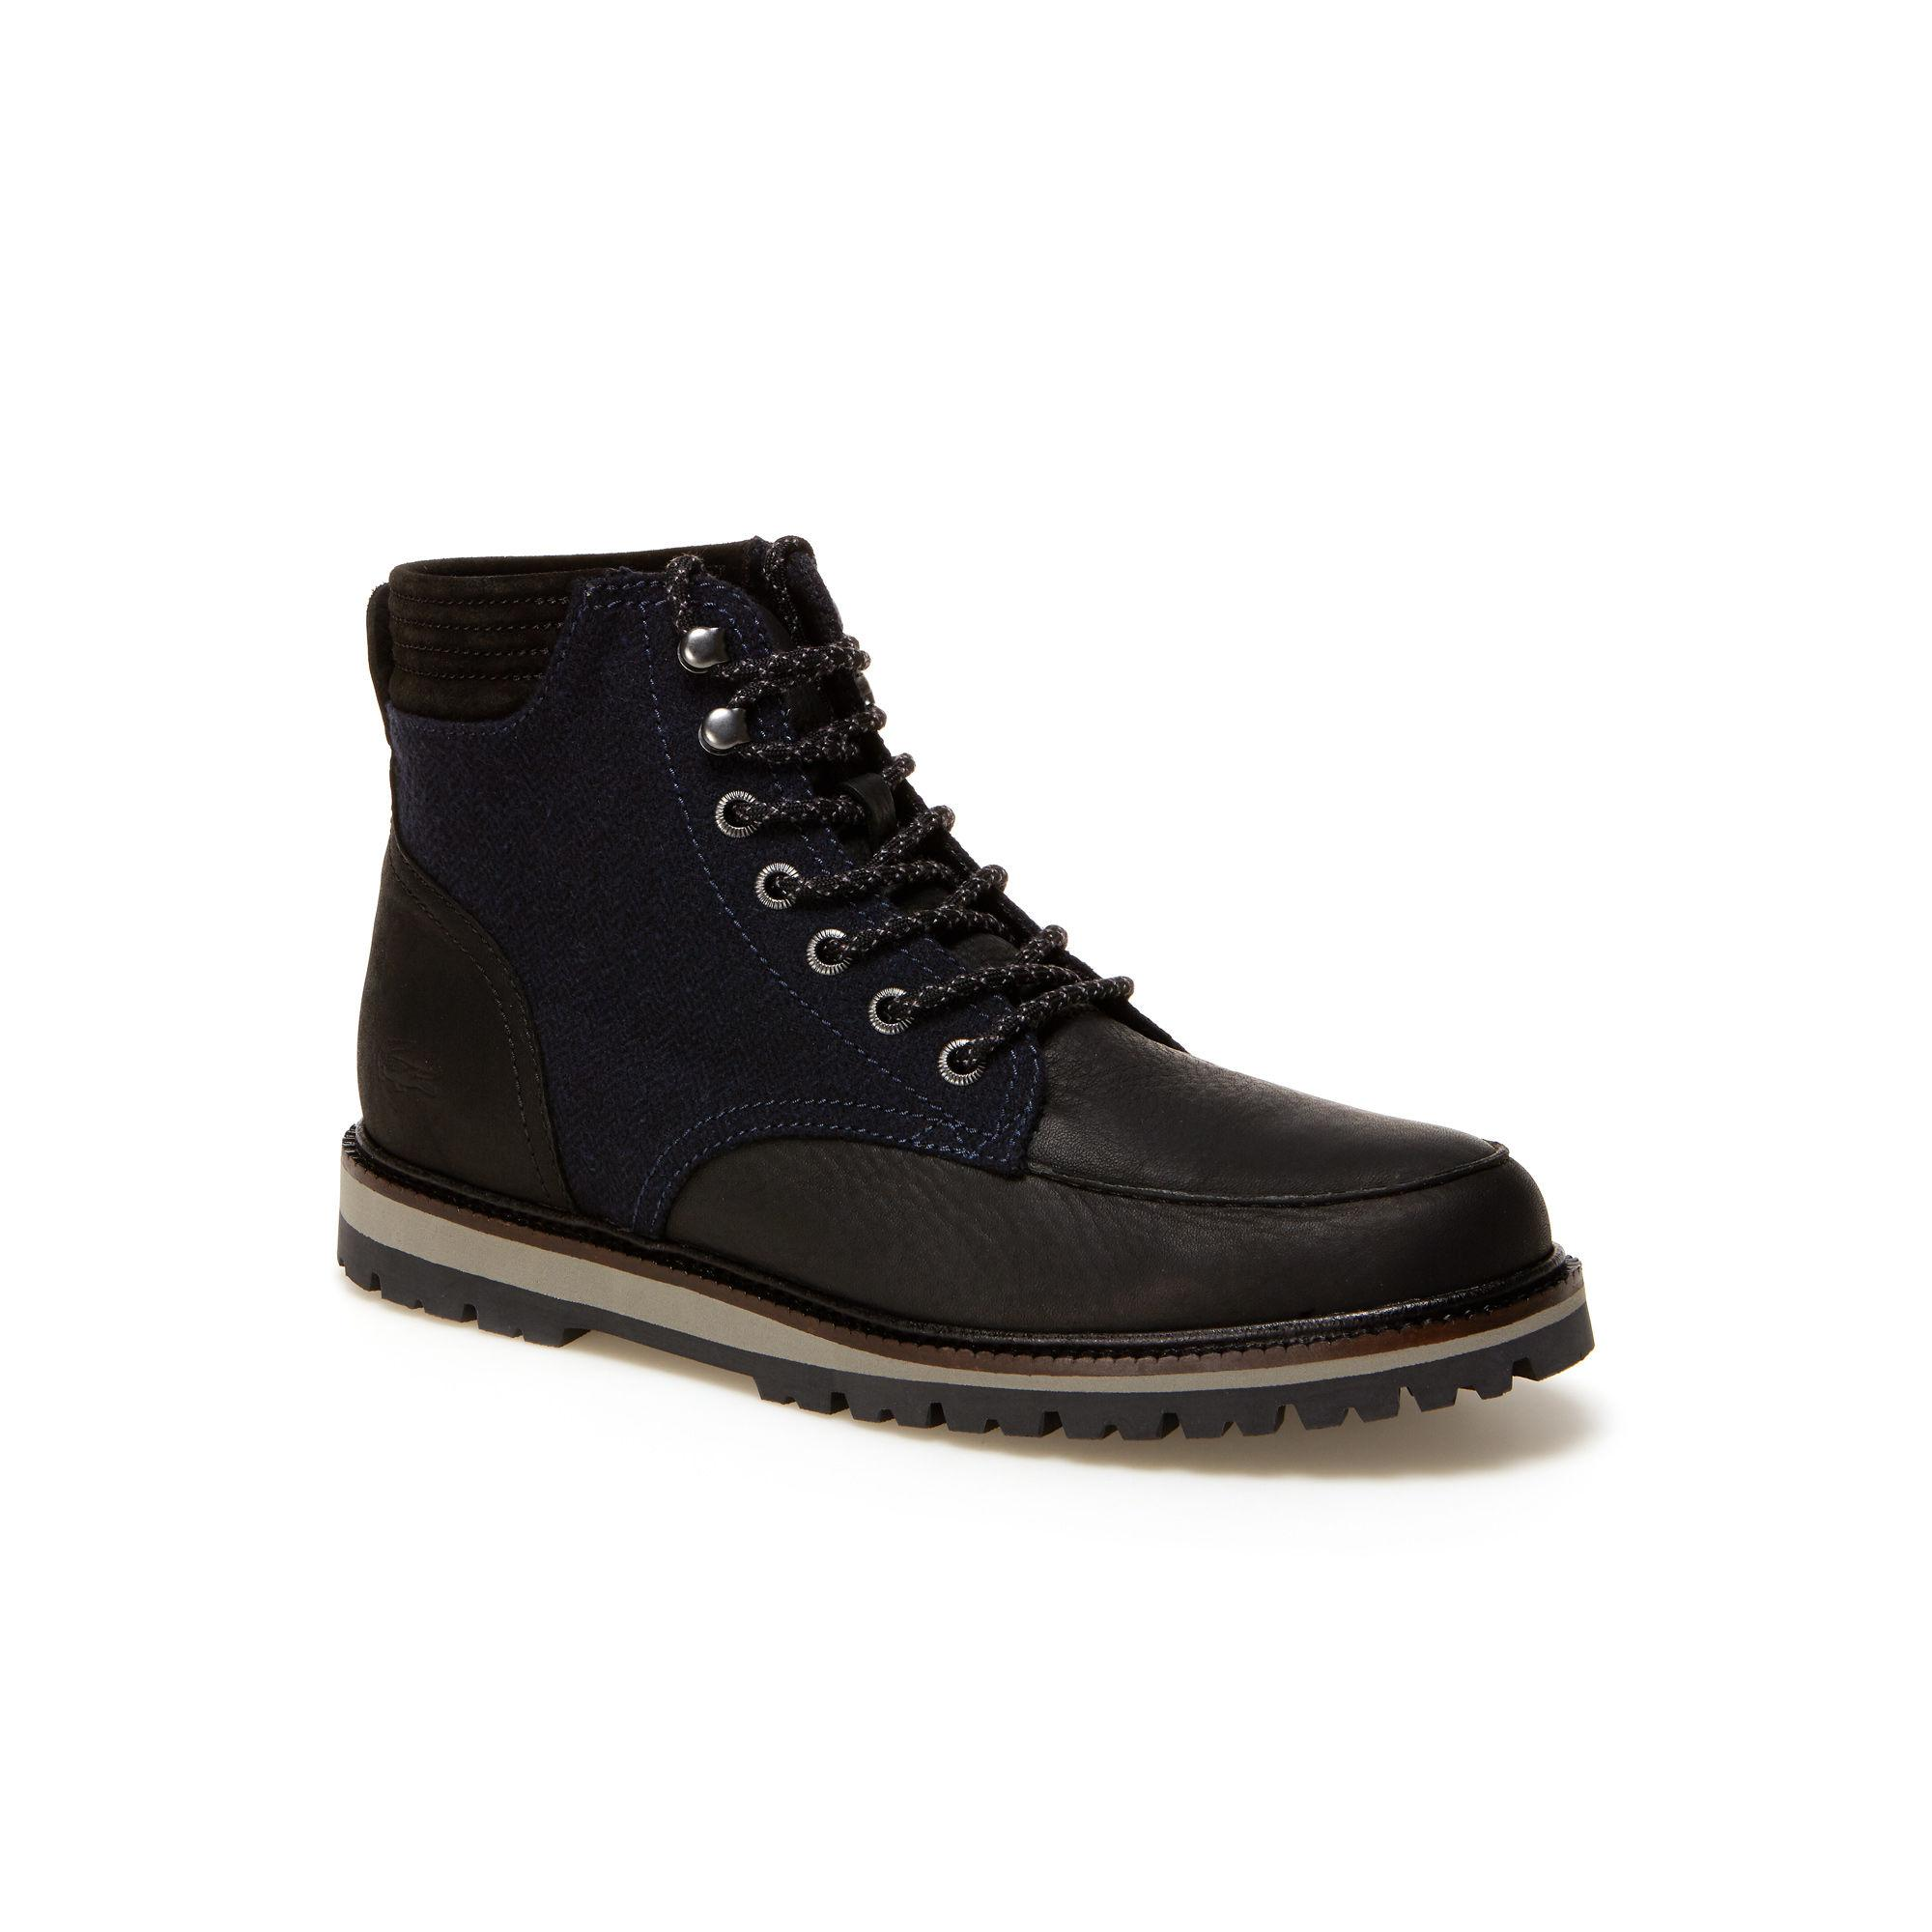 6ad3077cb3f448 Lyst - Lacoste Leather Montbard Boots in Black for Men